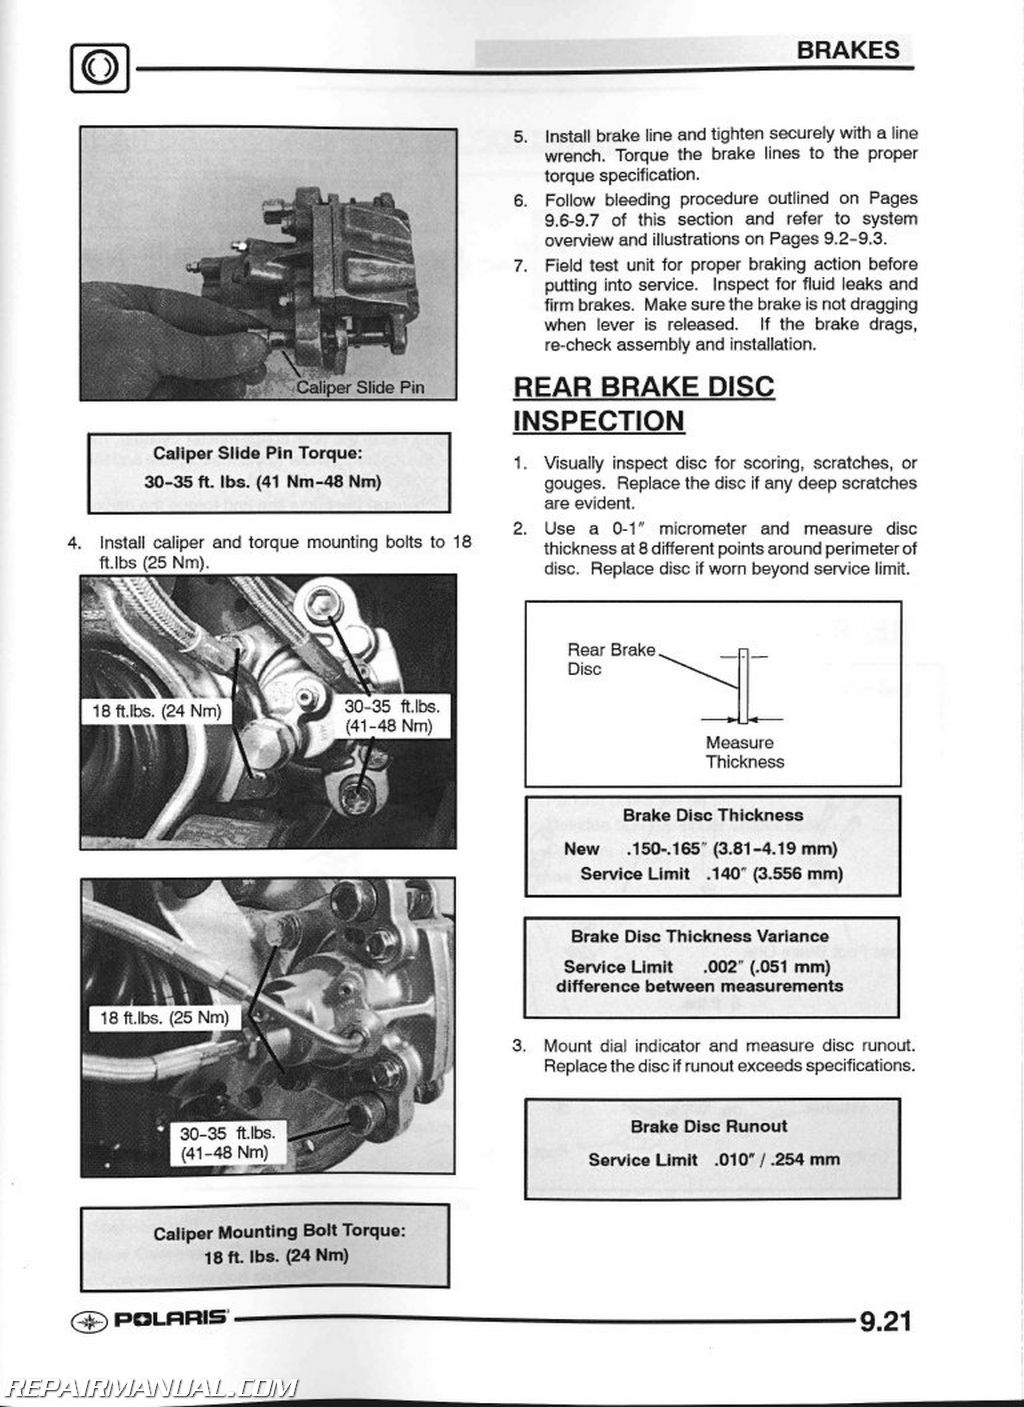 polaris sportsman 800 service manual